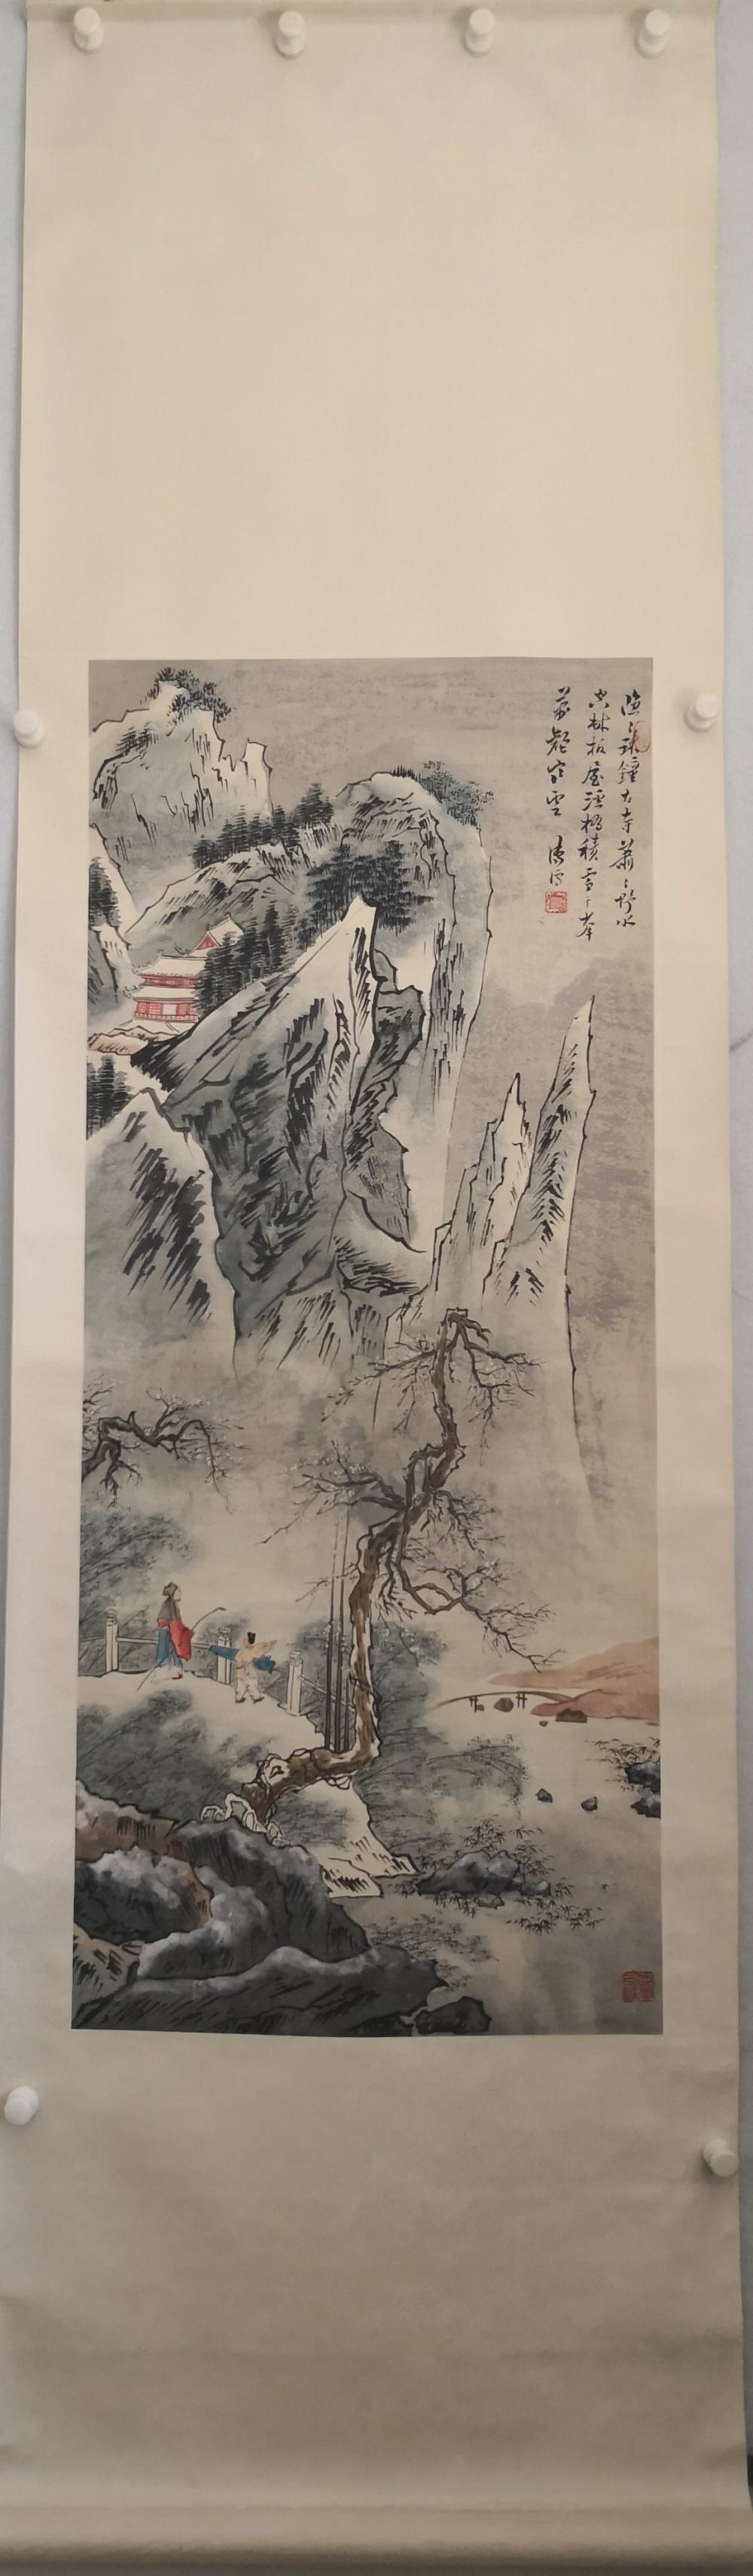 A CHINESE PAINTING BY PU RU